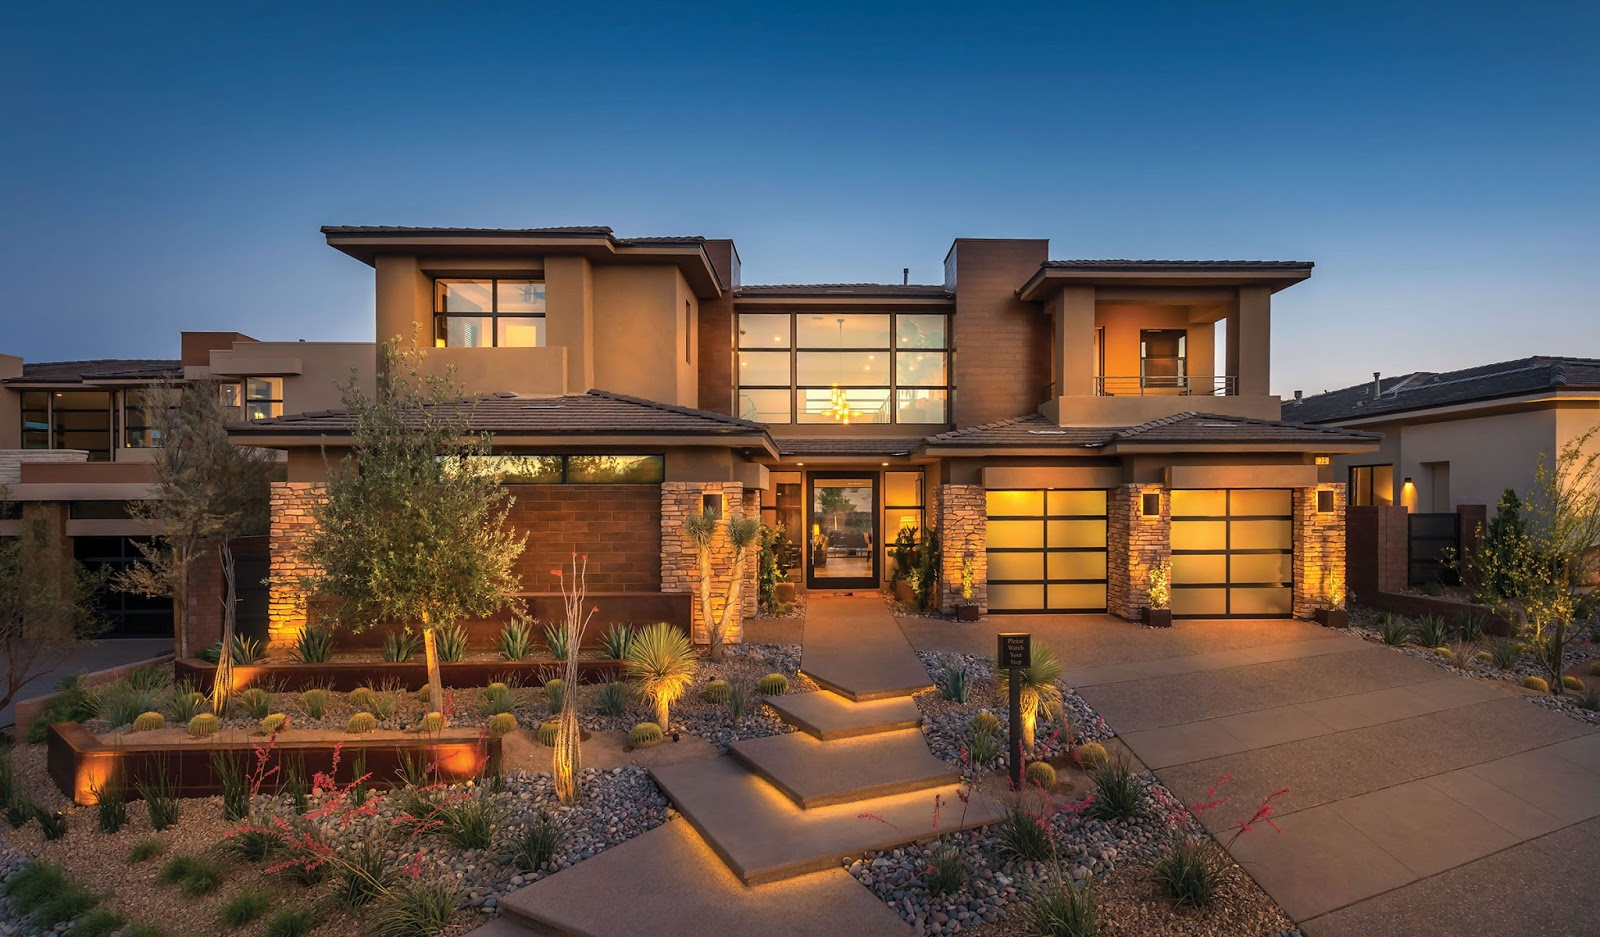 beautiful homes for sale in las vegas nevadarobert